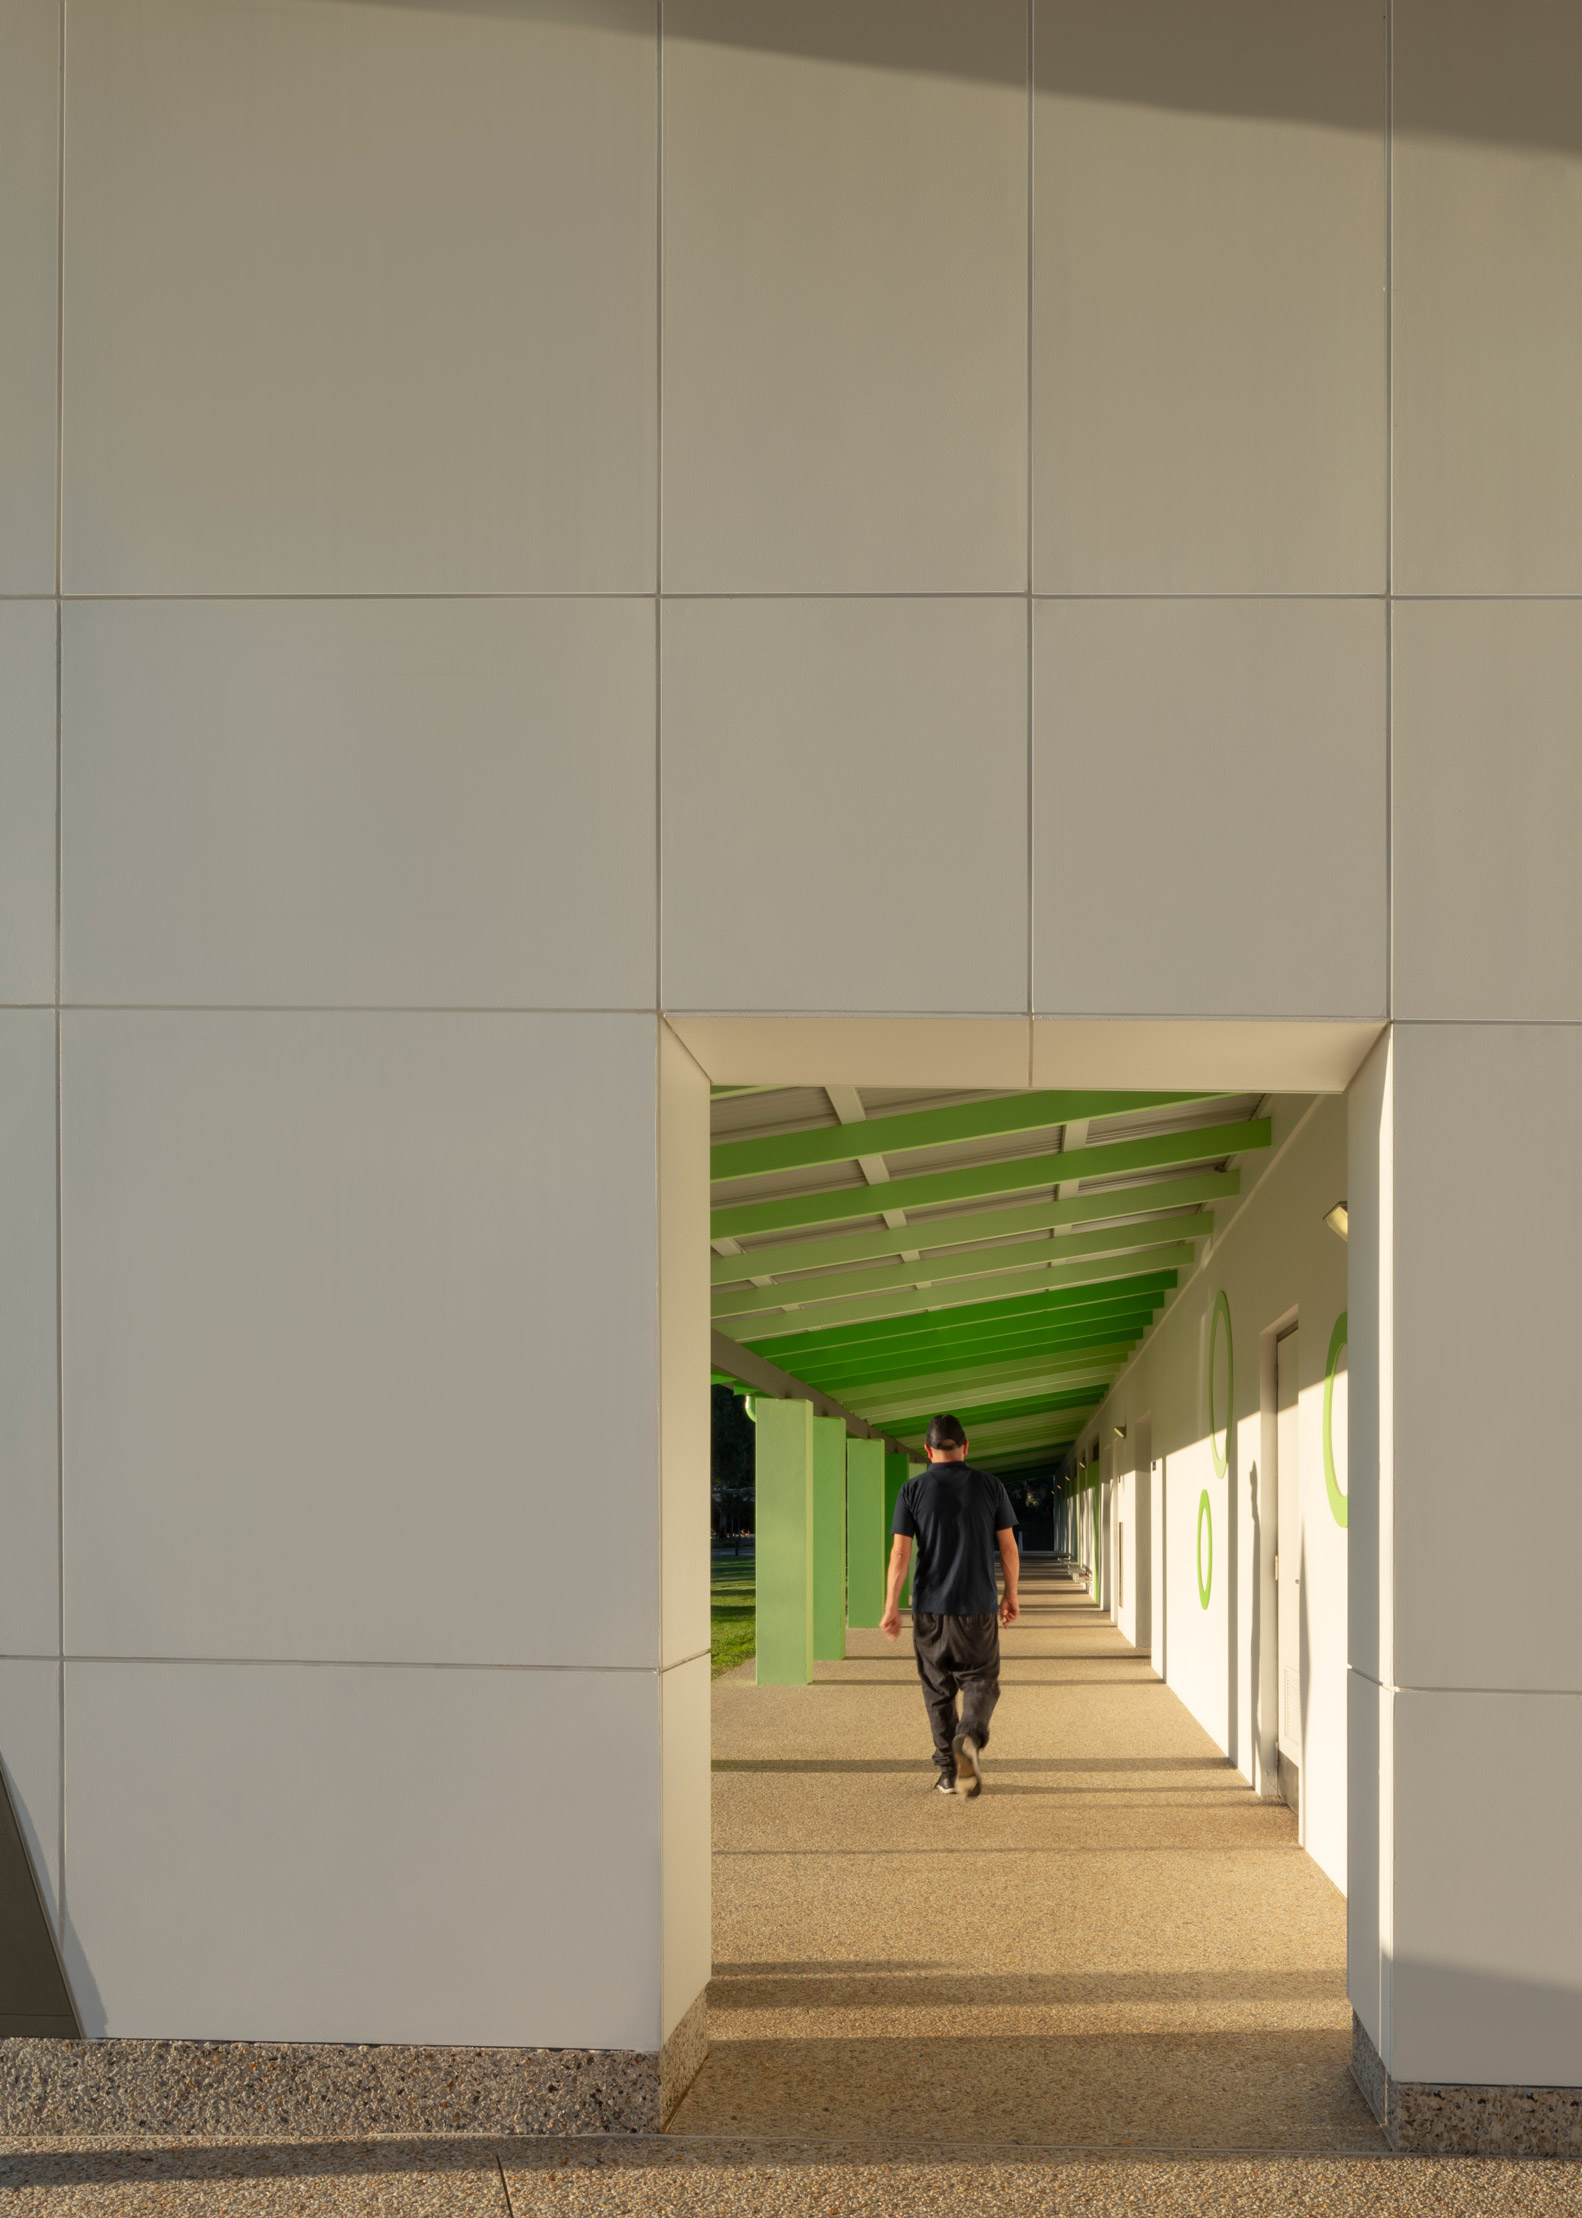 Carine Hall Rec Centre view through wall cutout down outdoor walkway with green beams